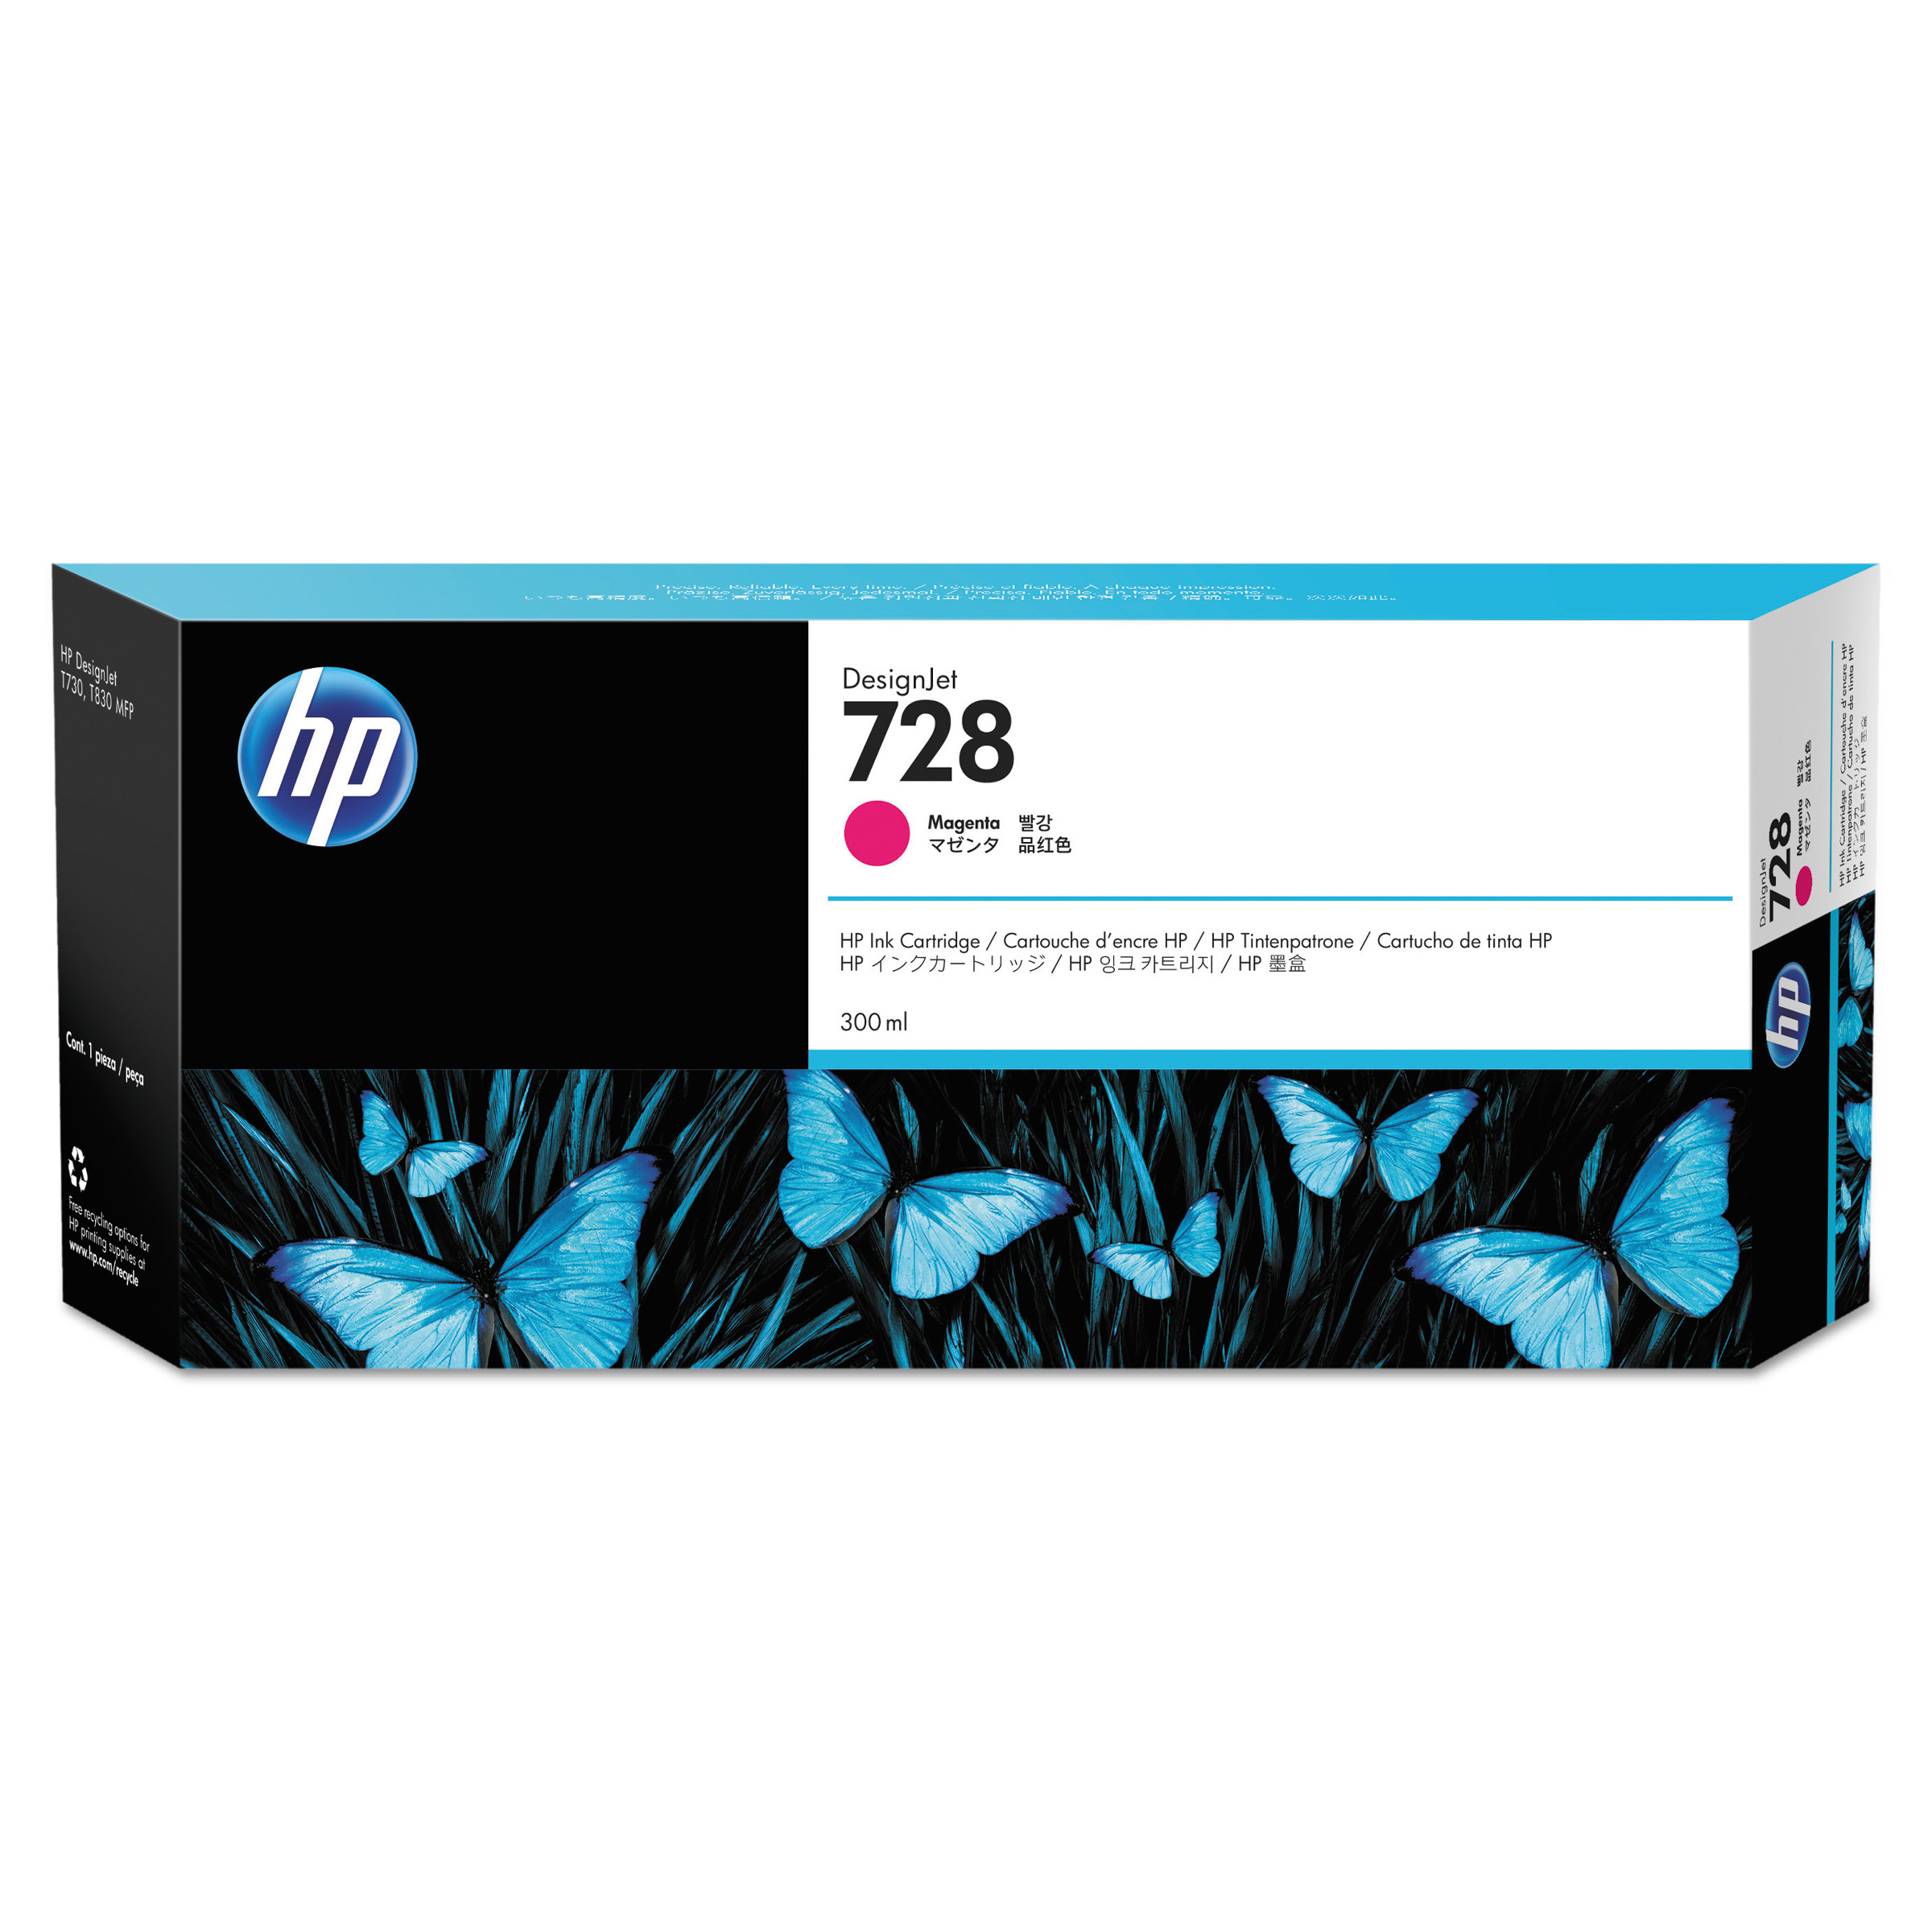 VC Remanufactured F9J68A Matte Back HP 728 Ink Cartridge Replacement for HP Designjet T730 MK